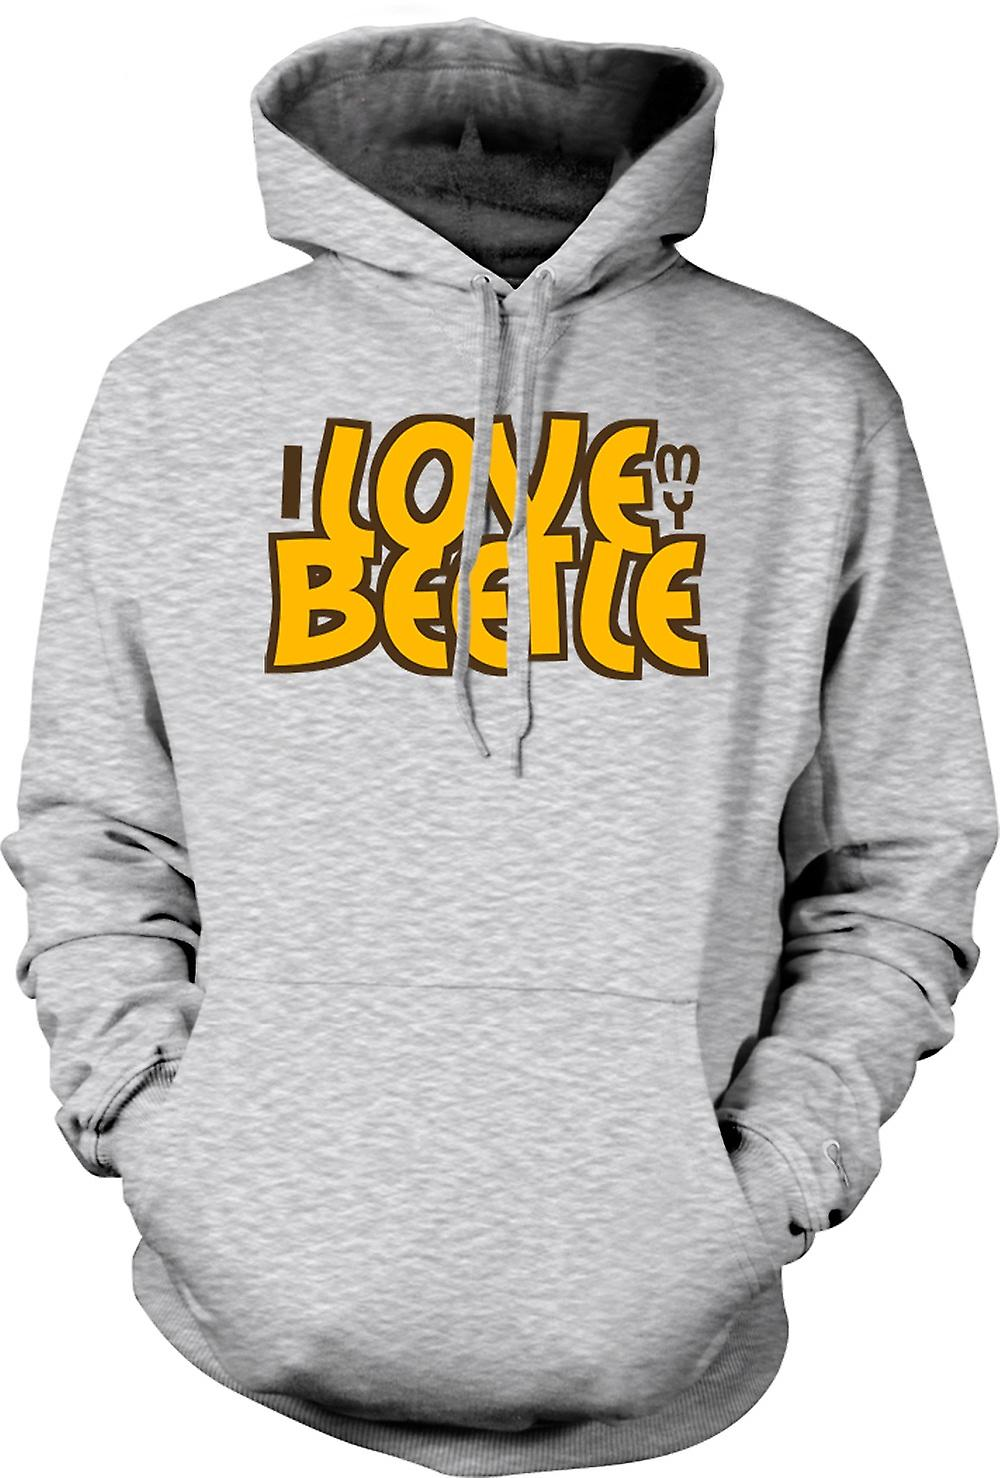 Mens Hoodie - I Love My Beetle - Car Enthusiast